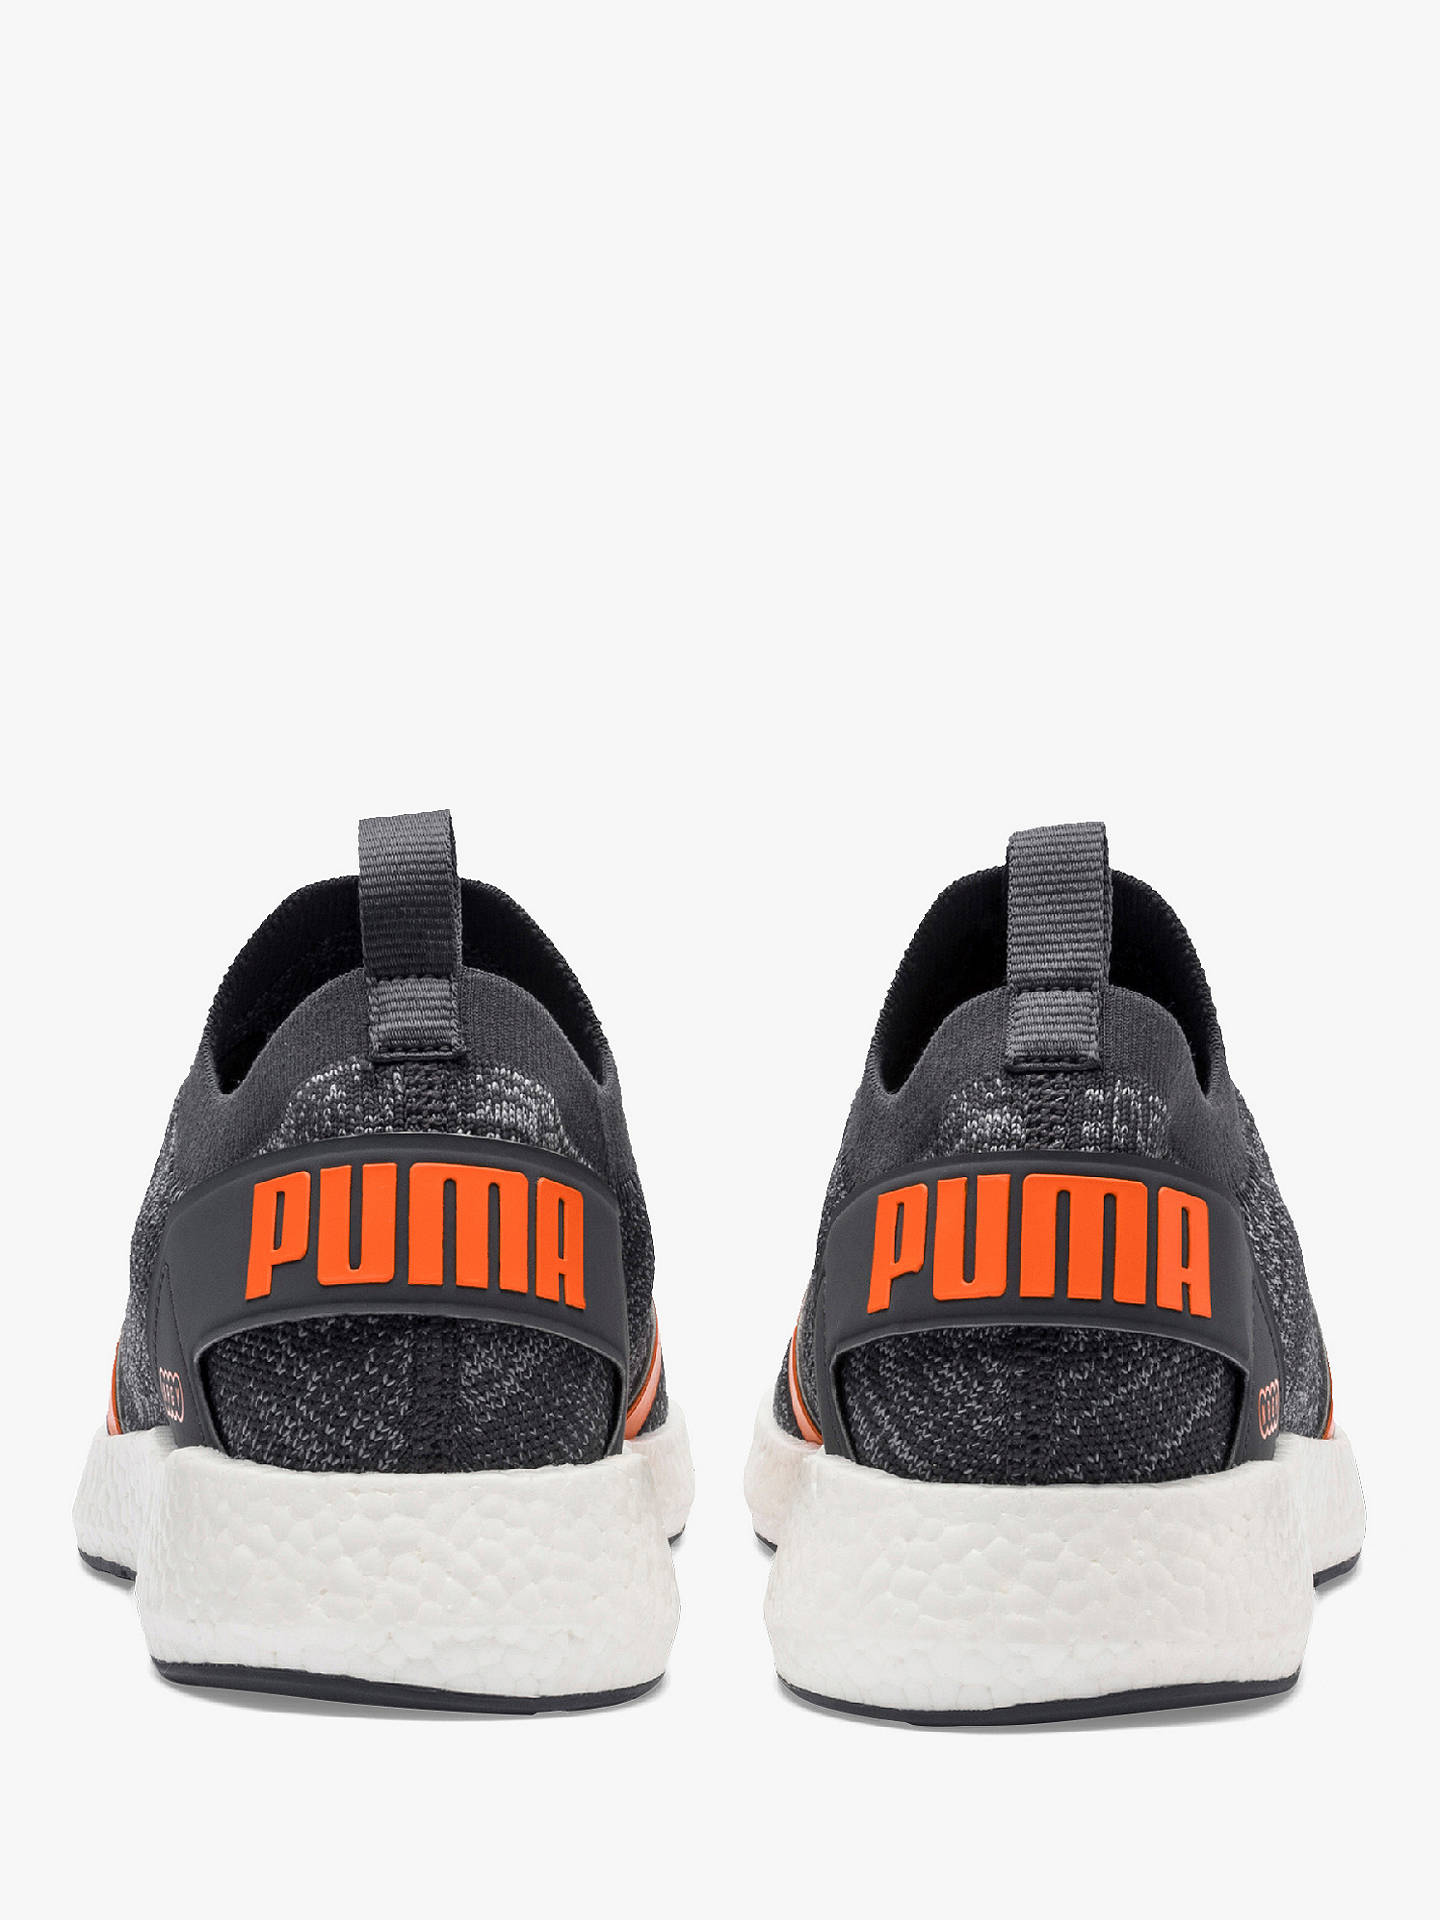 PUMA NRGY Neko Engineer Knit Men s Running Shoes at John Lewis ... 13ca7bf77